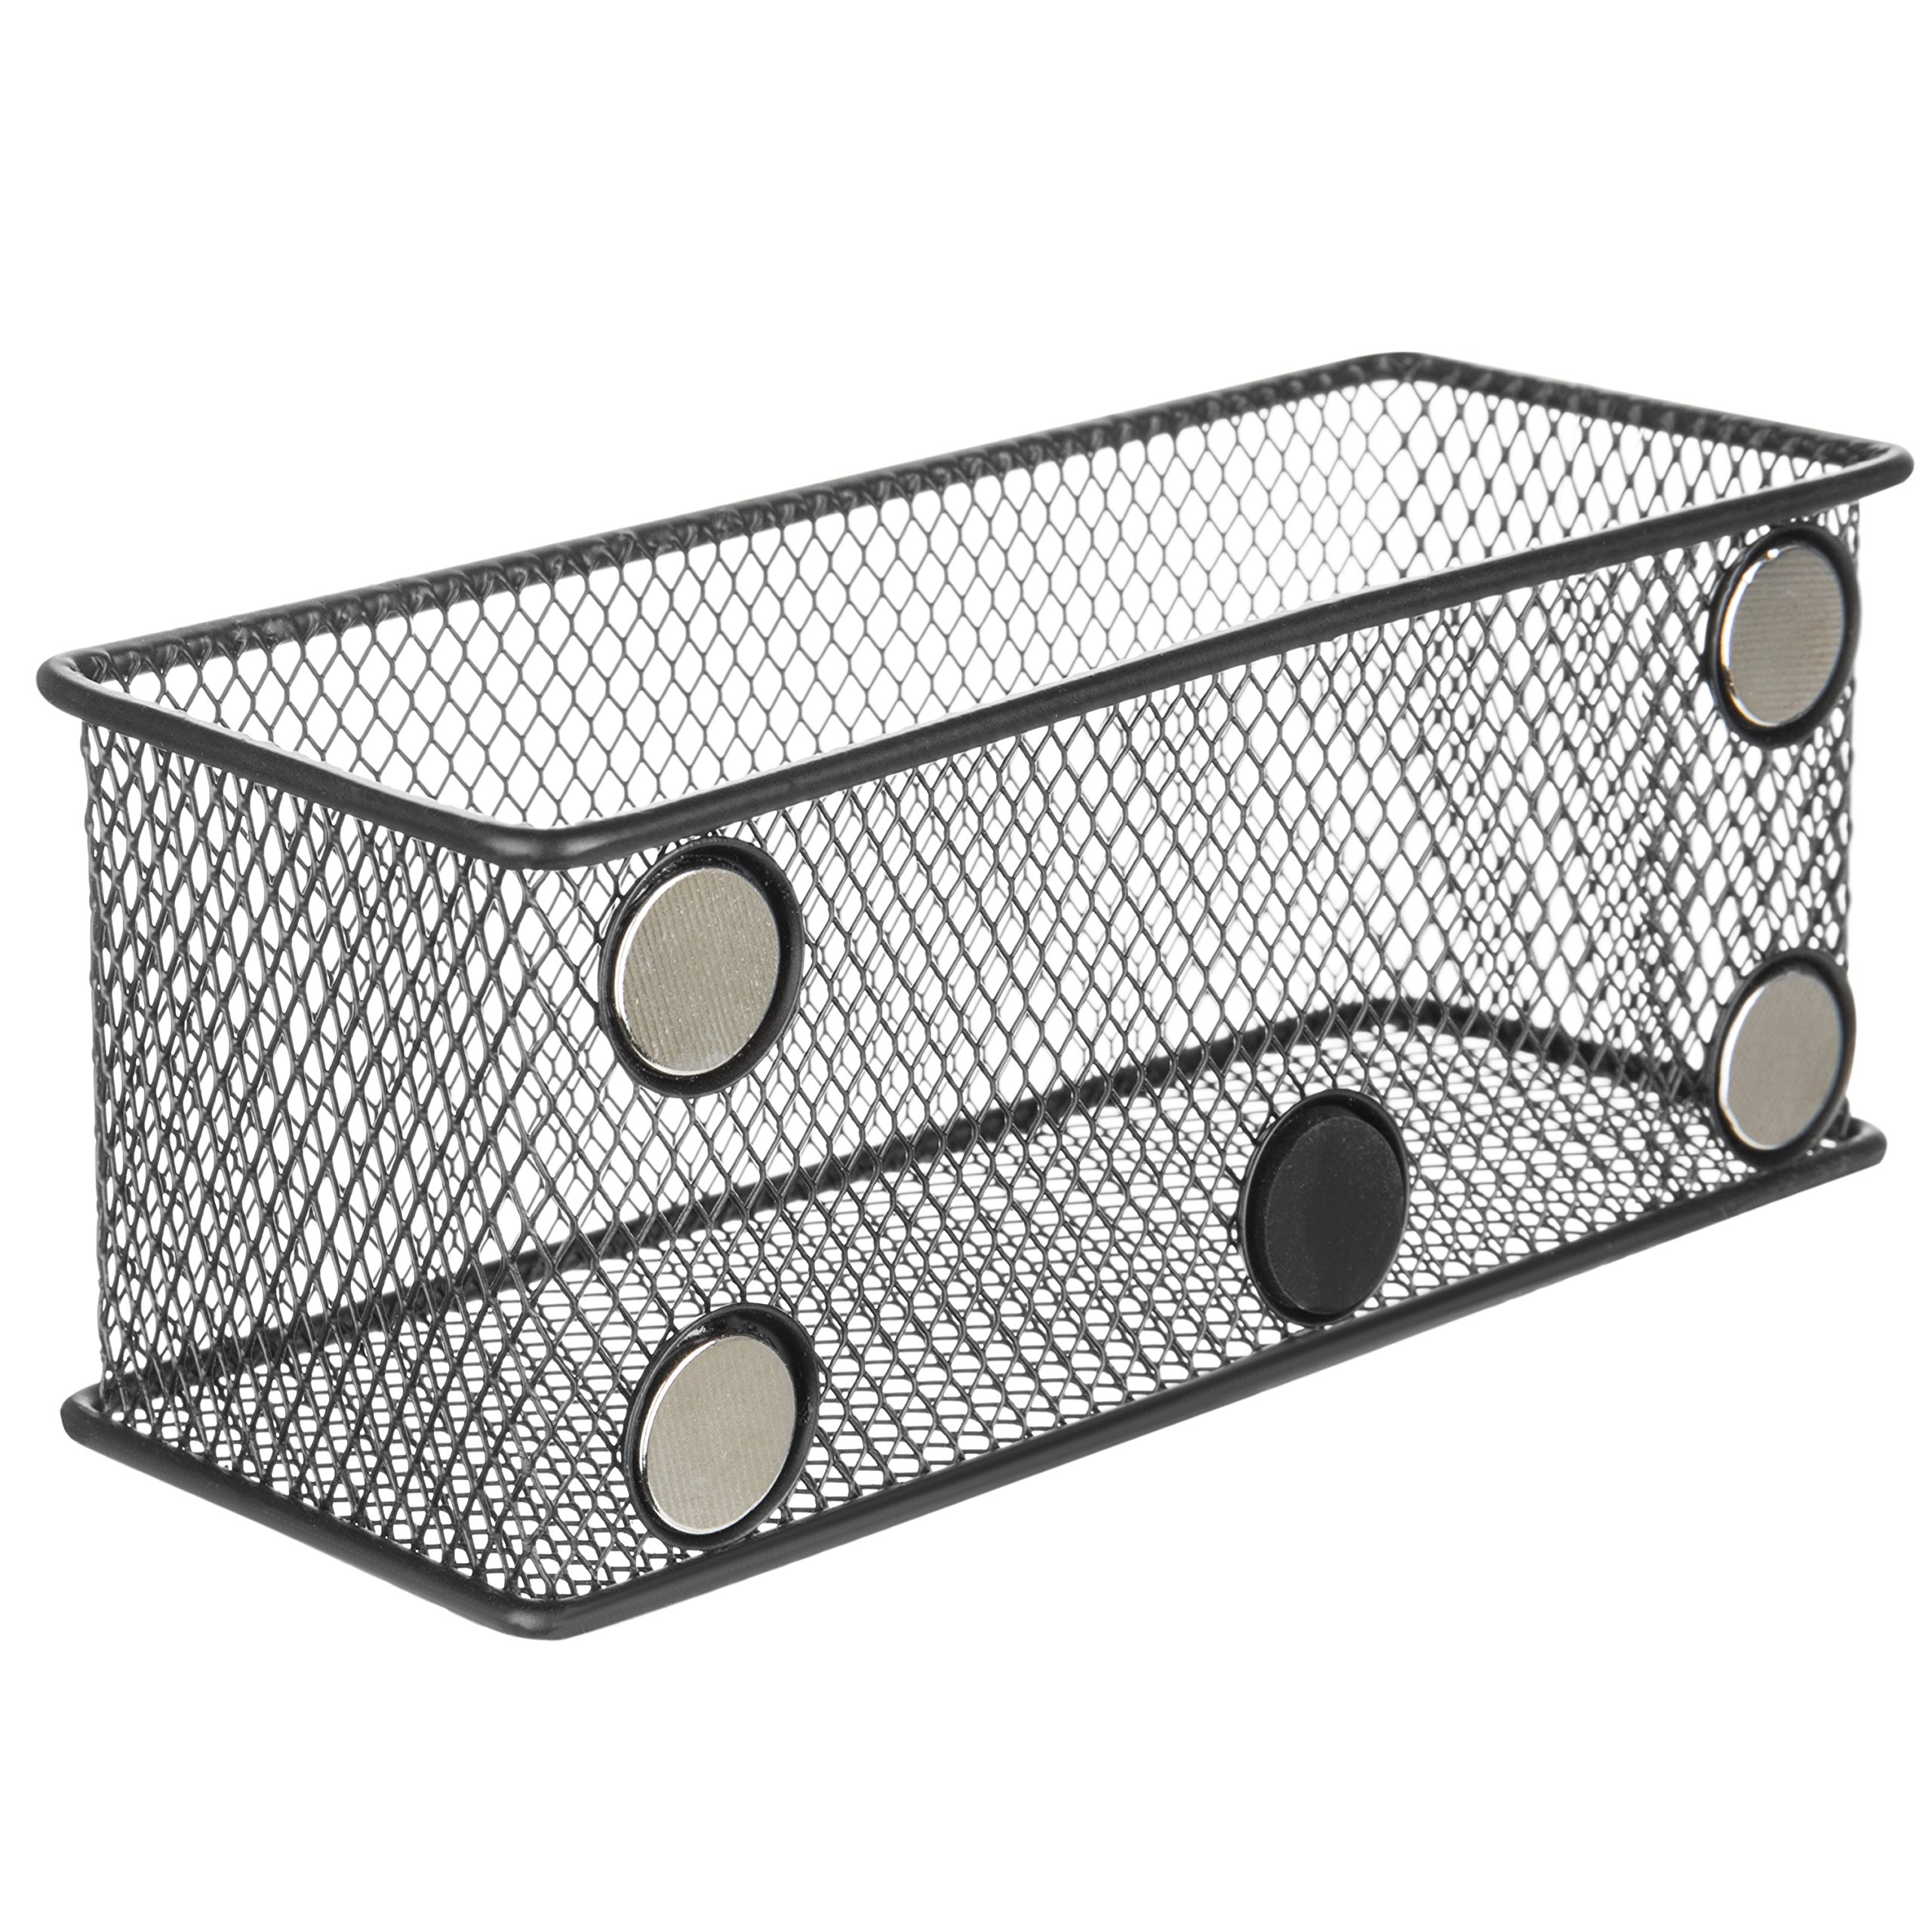 MyGift Wire Mesh Magnetic Storage Baskets, Office Supply Organizer, Set of 6, Black by MyGift (Image #6)